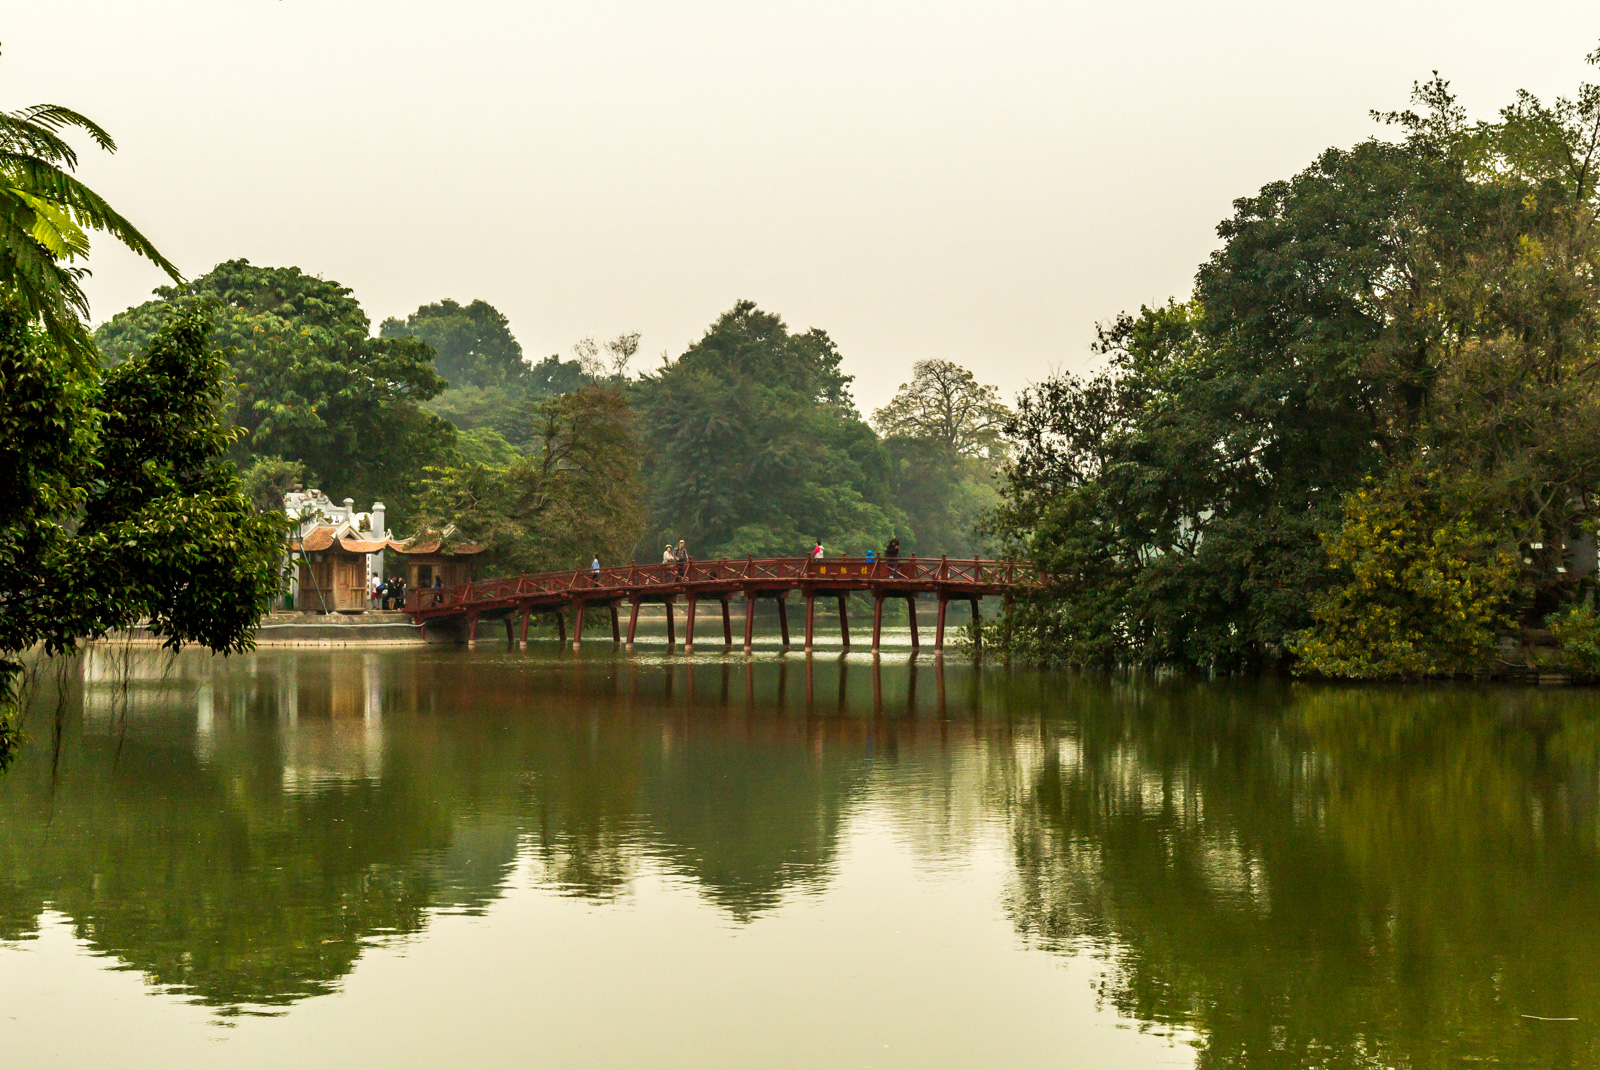 Little bridge to Ngoc Son Temple.